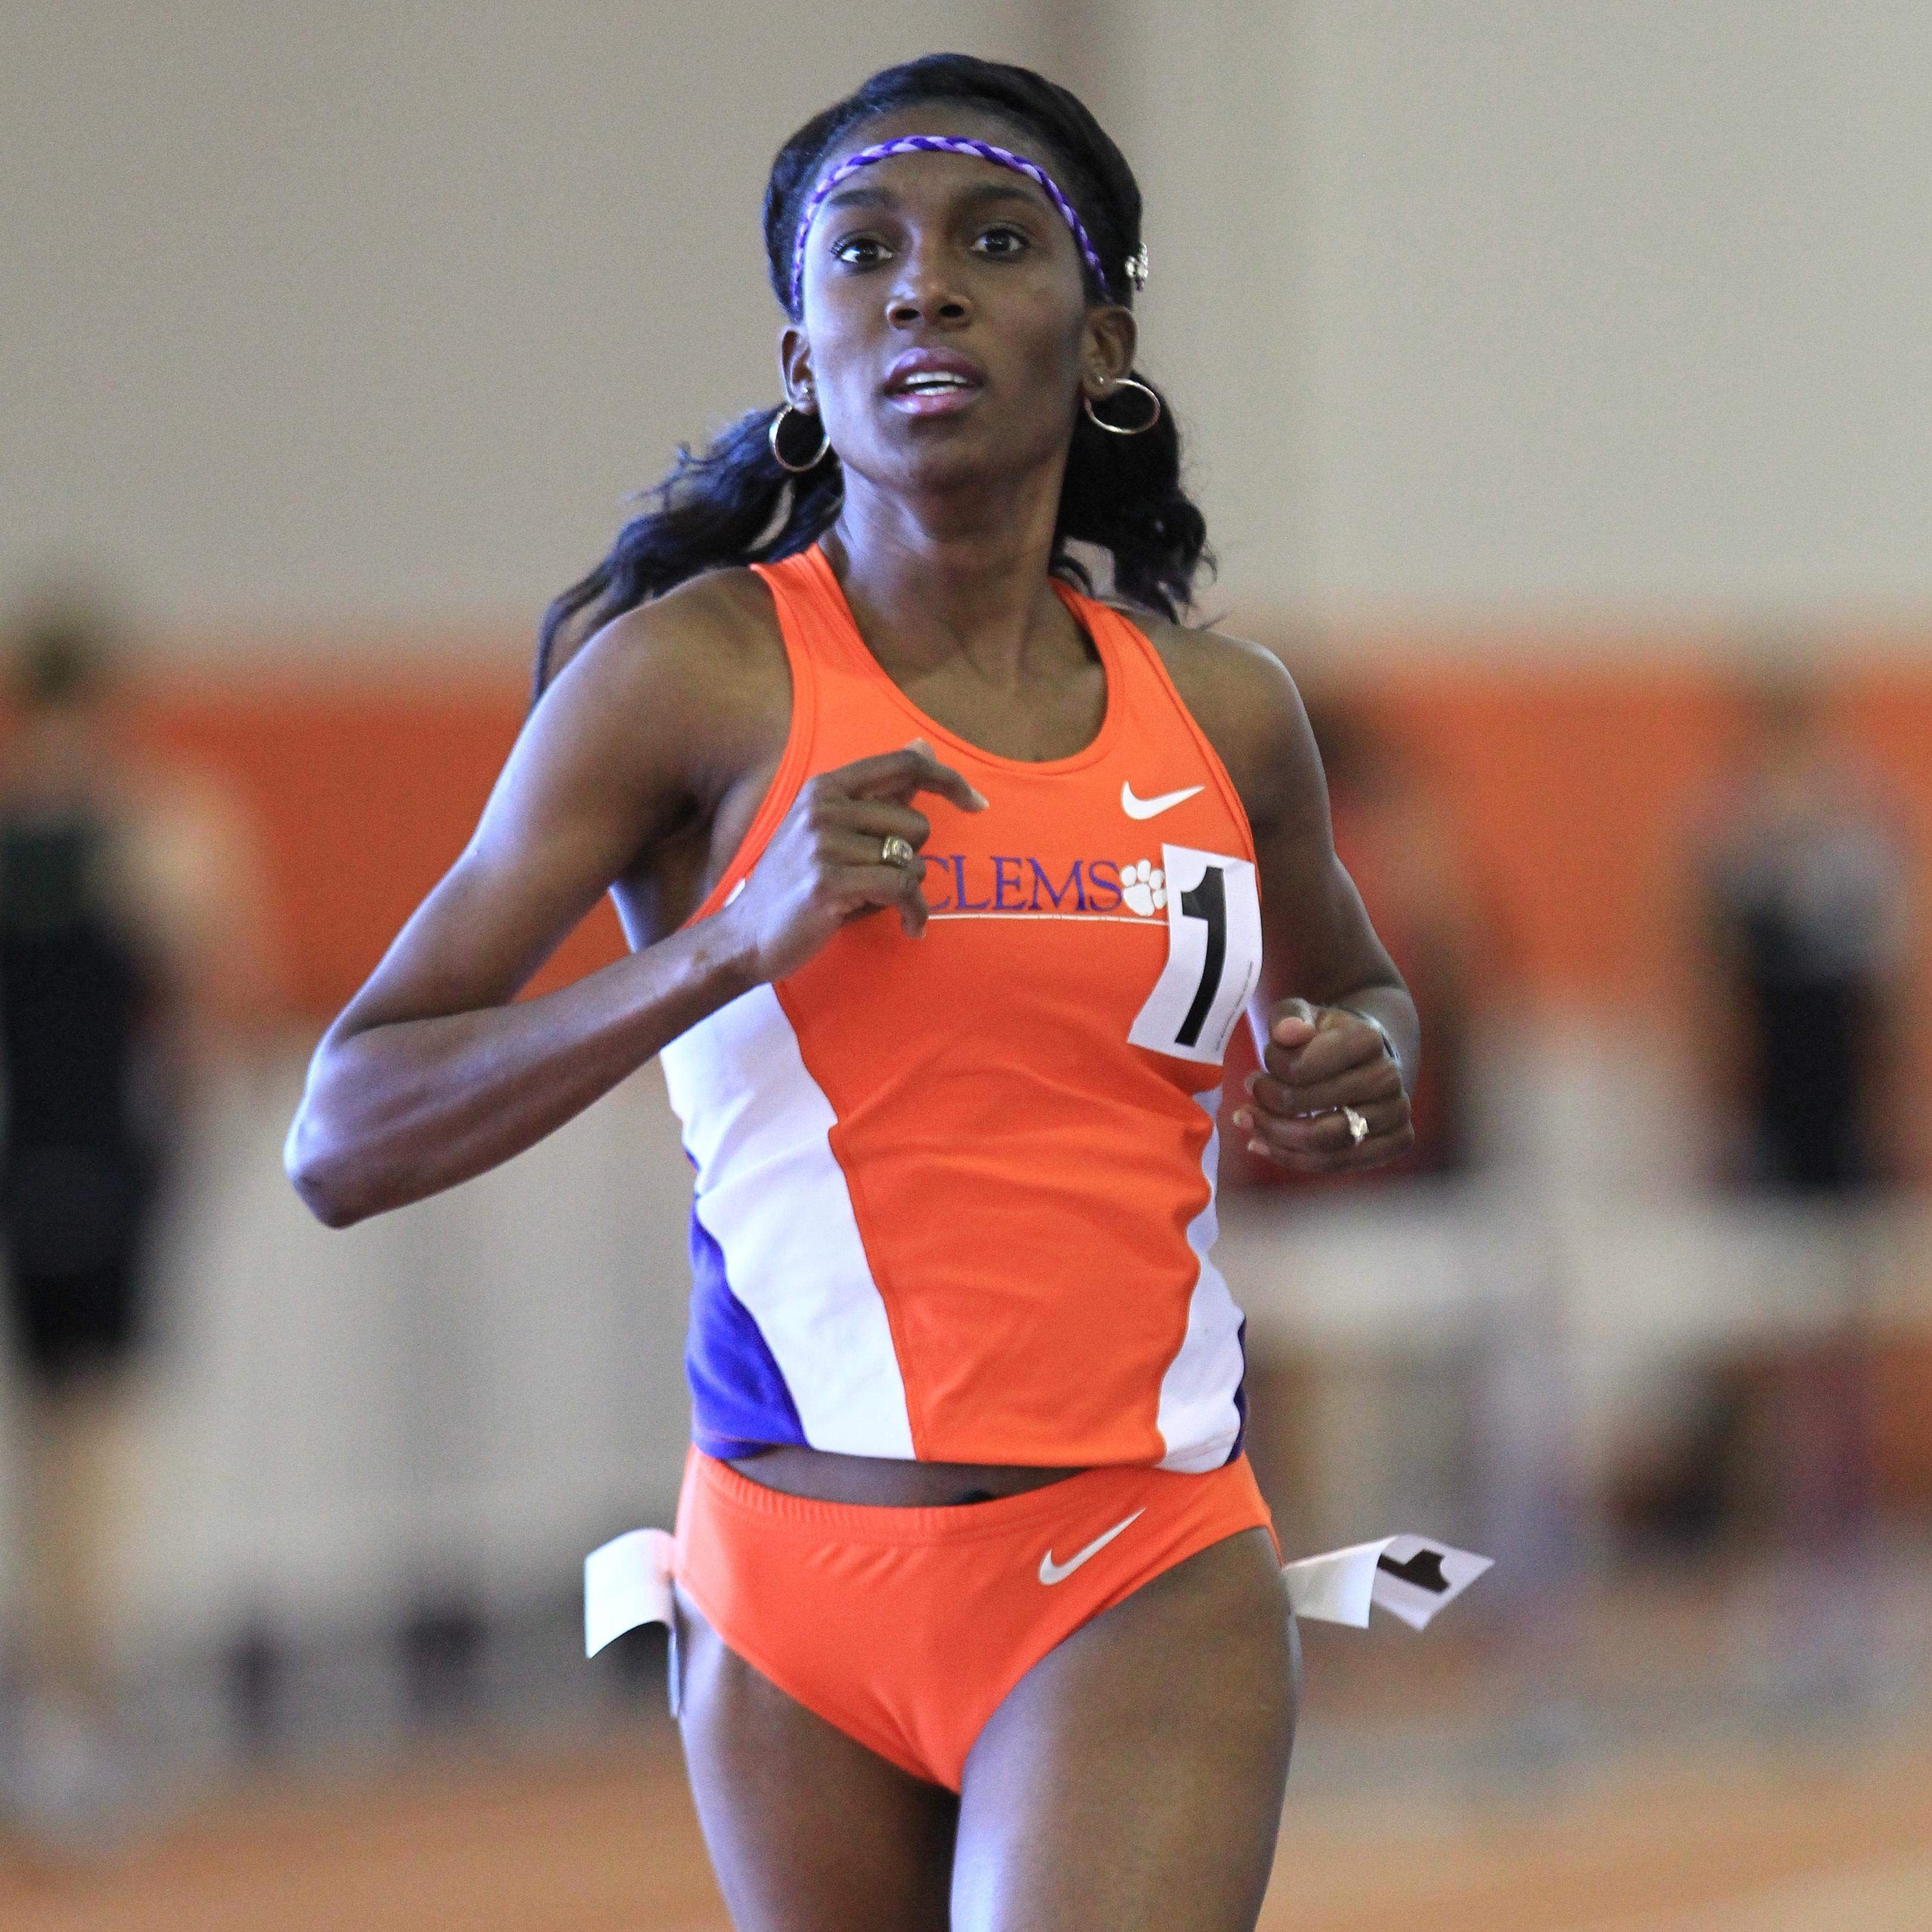 AgSouth Homegrown Athlete of the Week ? Natoya Goule